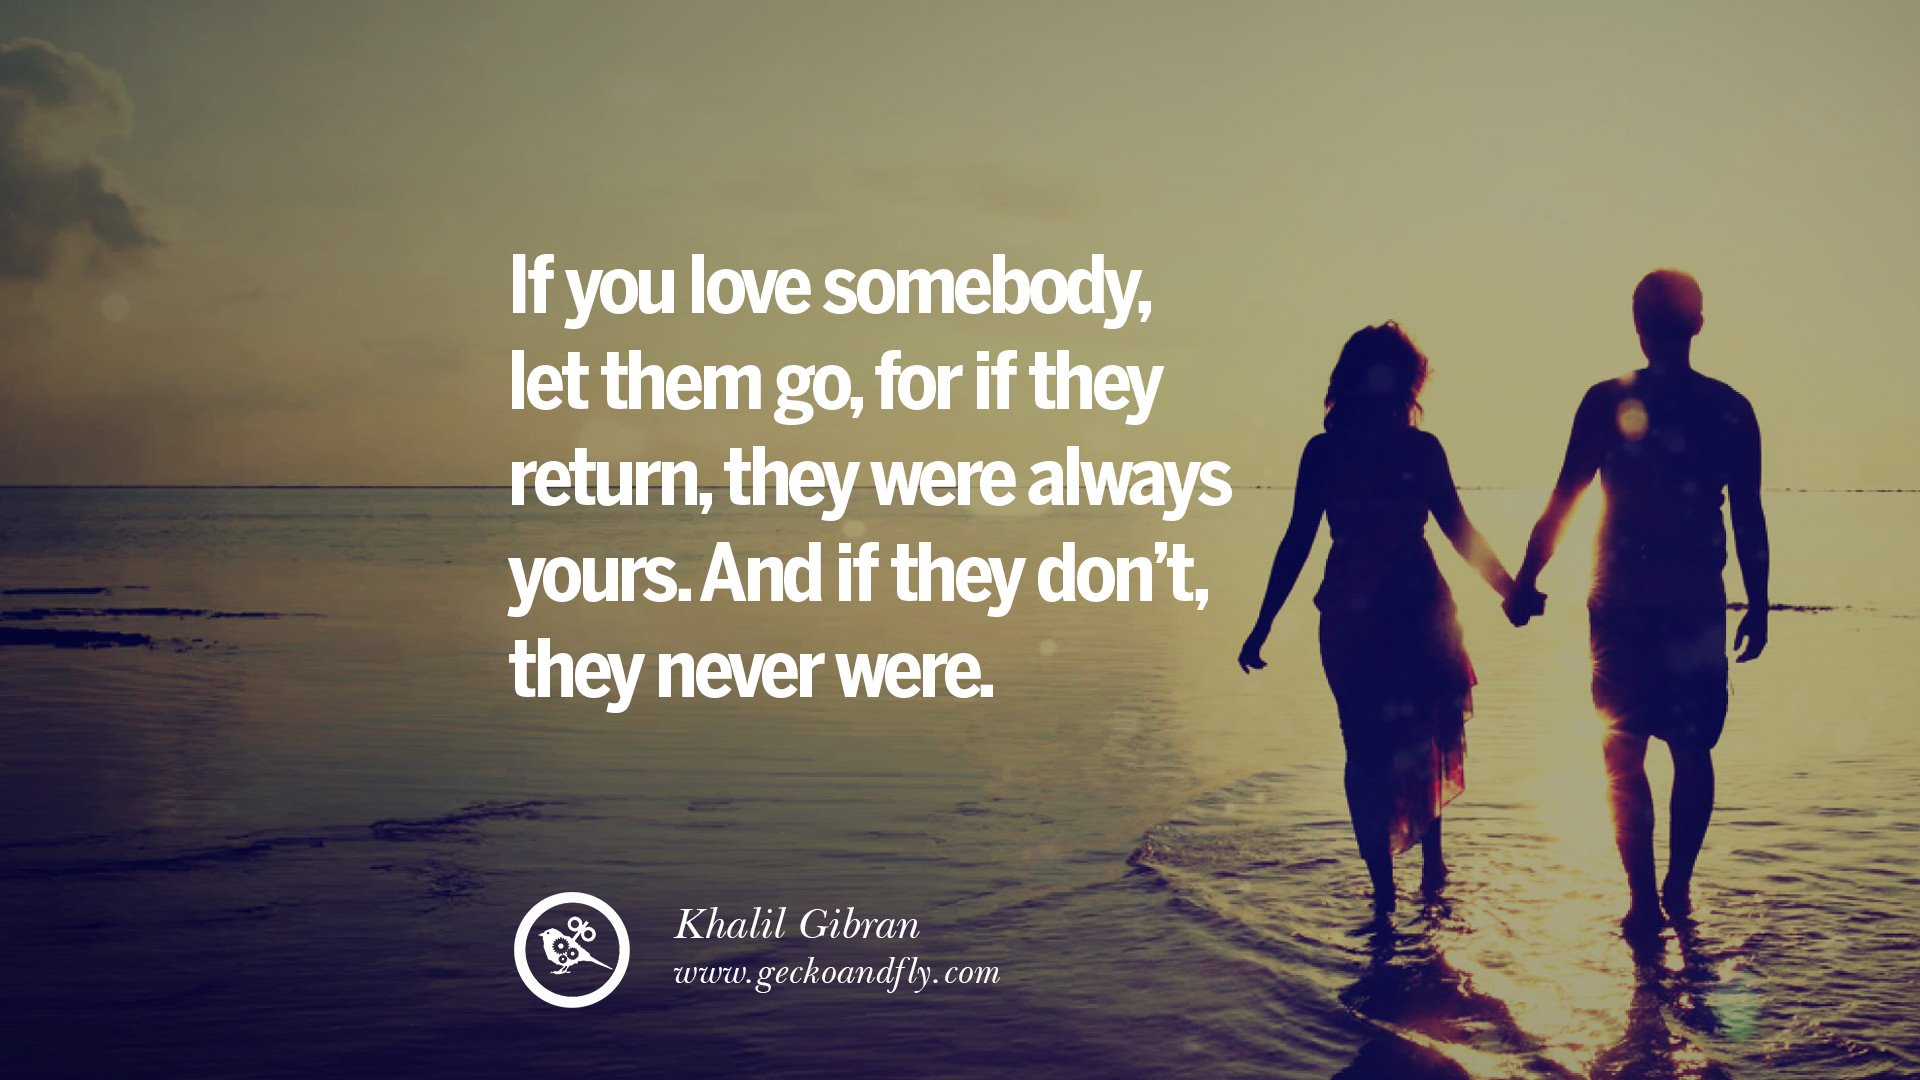 Quotes About Moving On And Letting Go Quotes About Moving On Of Love Quotes About Moving On And Letting